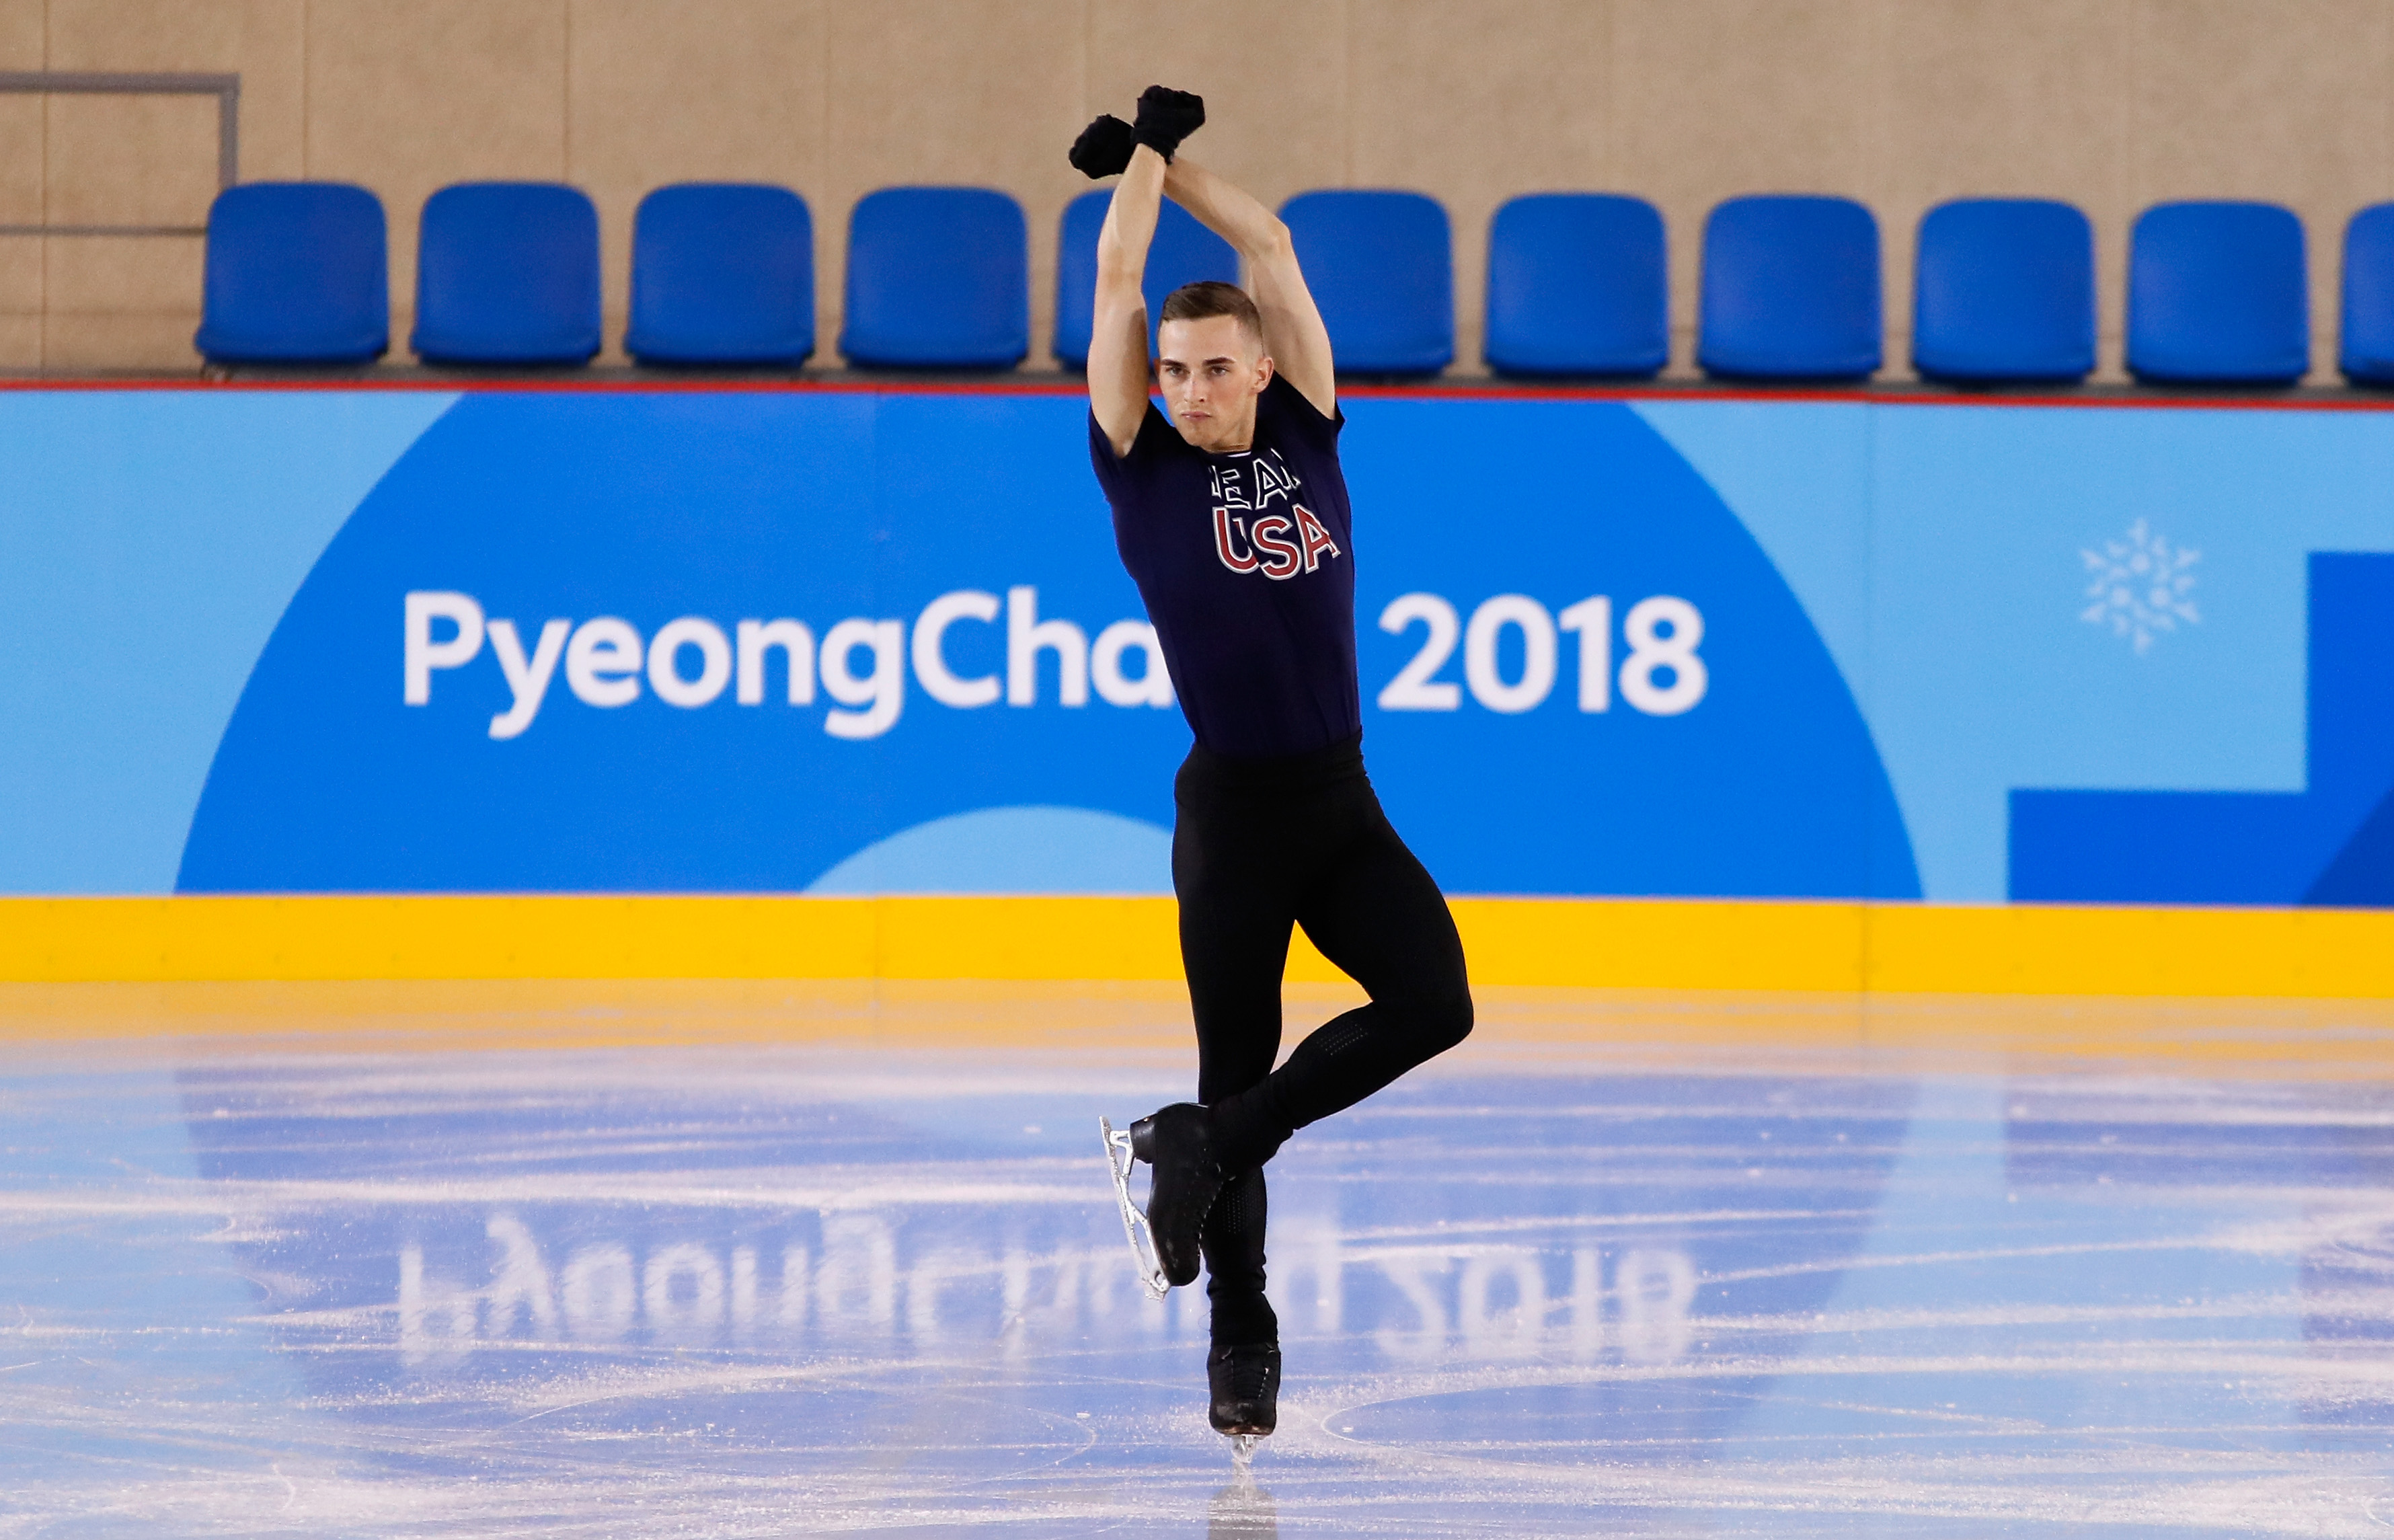 Adam Rippon of The United States trains during Figure Skating practice ahead of the PyeongChang 2018 Winter Olympic Games at Gangneung Ice Arena on February 7, 2018 in Pyeongchang-gun, South Korea.